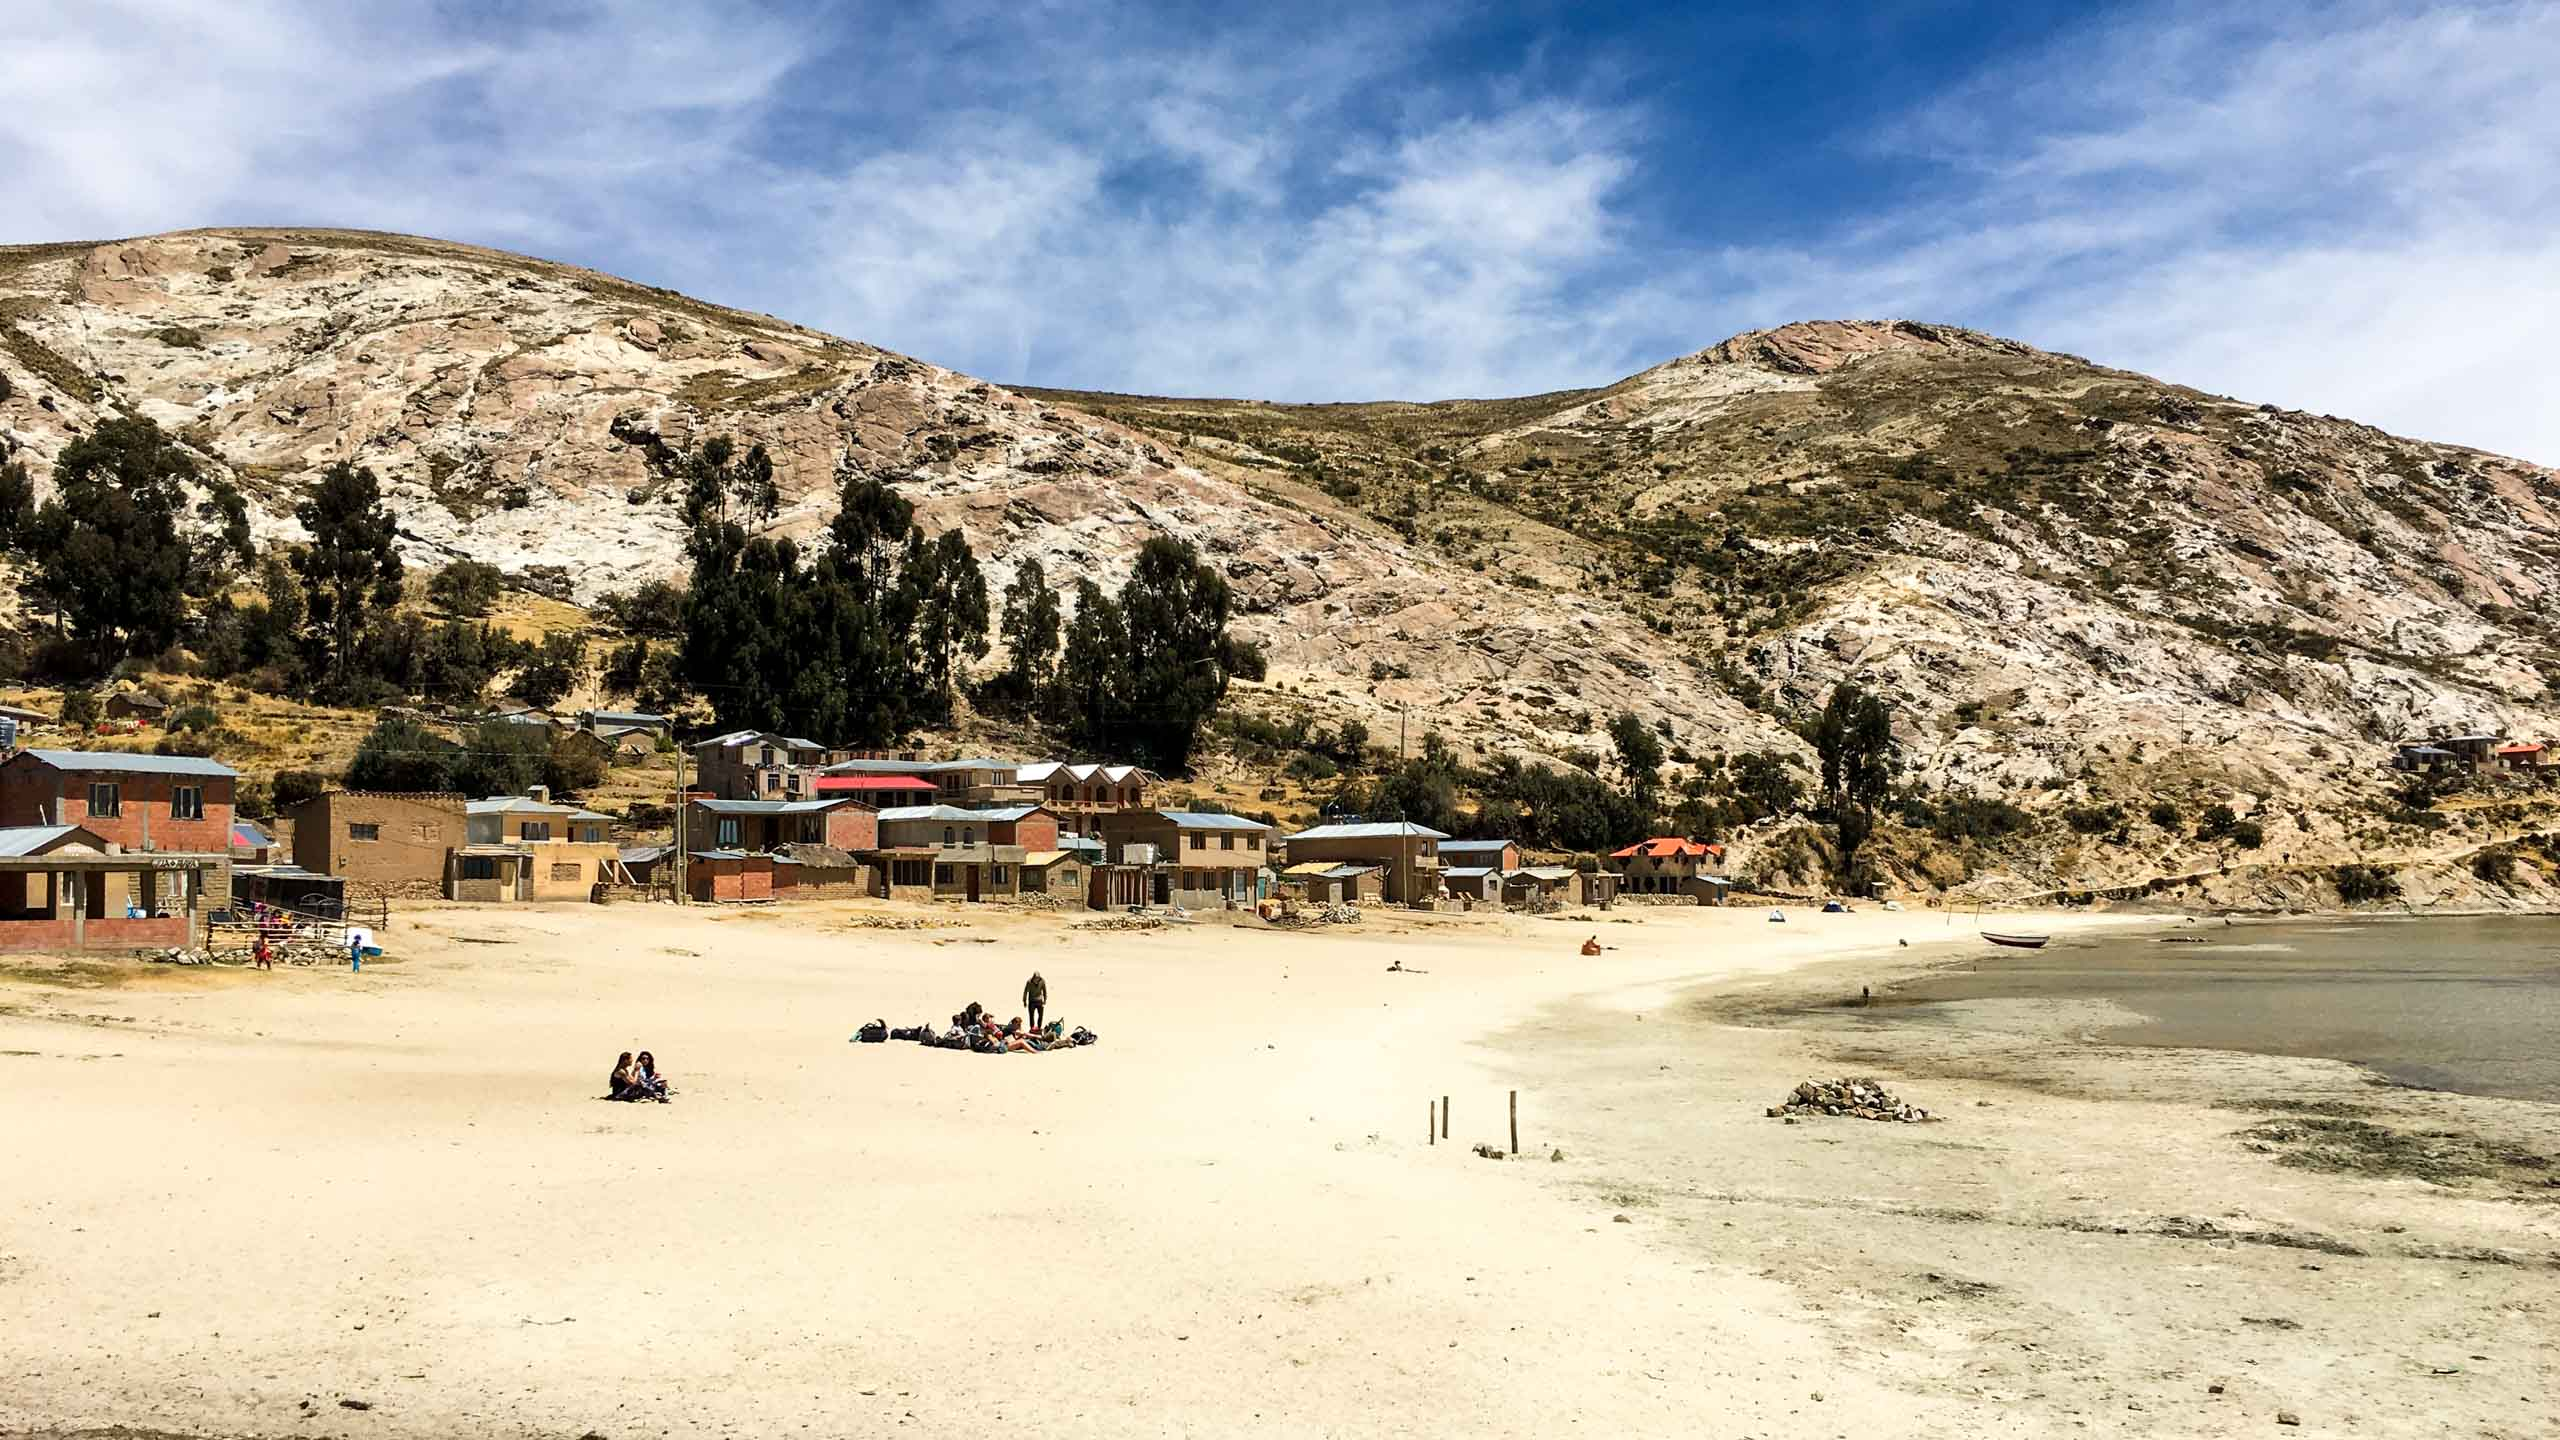 A beach in Bolivia